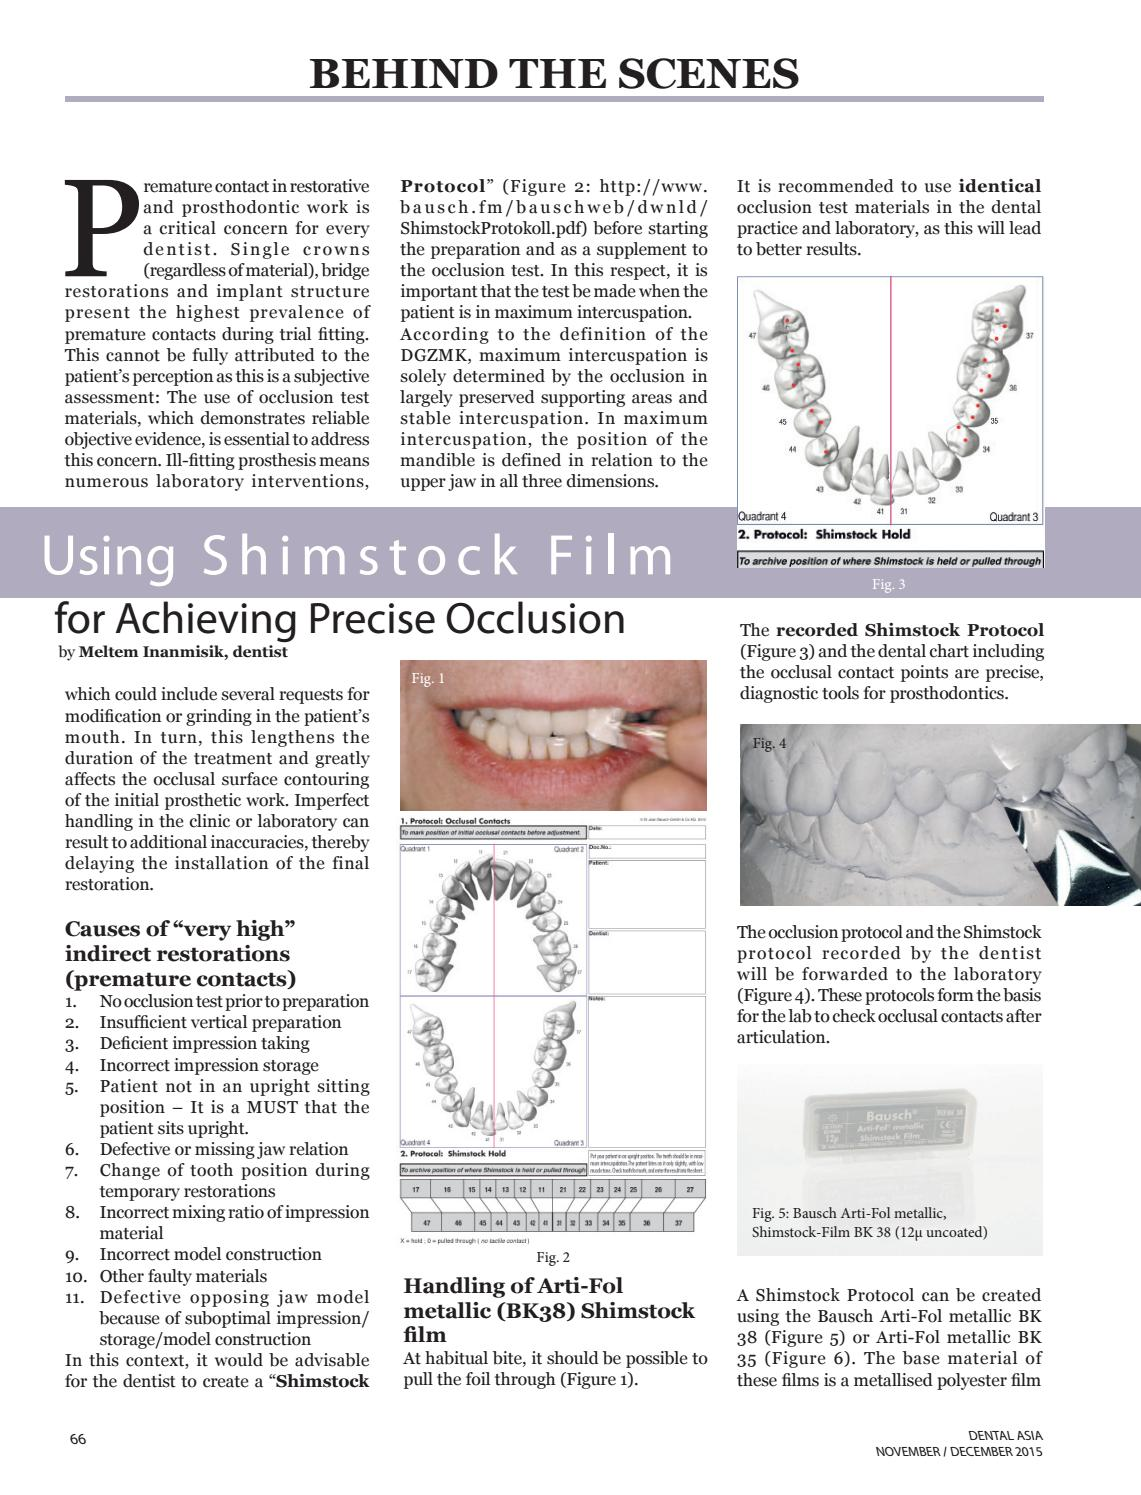 Using Shimstock Film for achieving precise occlusion by Pablo